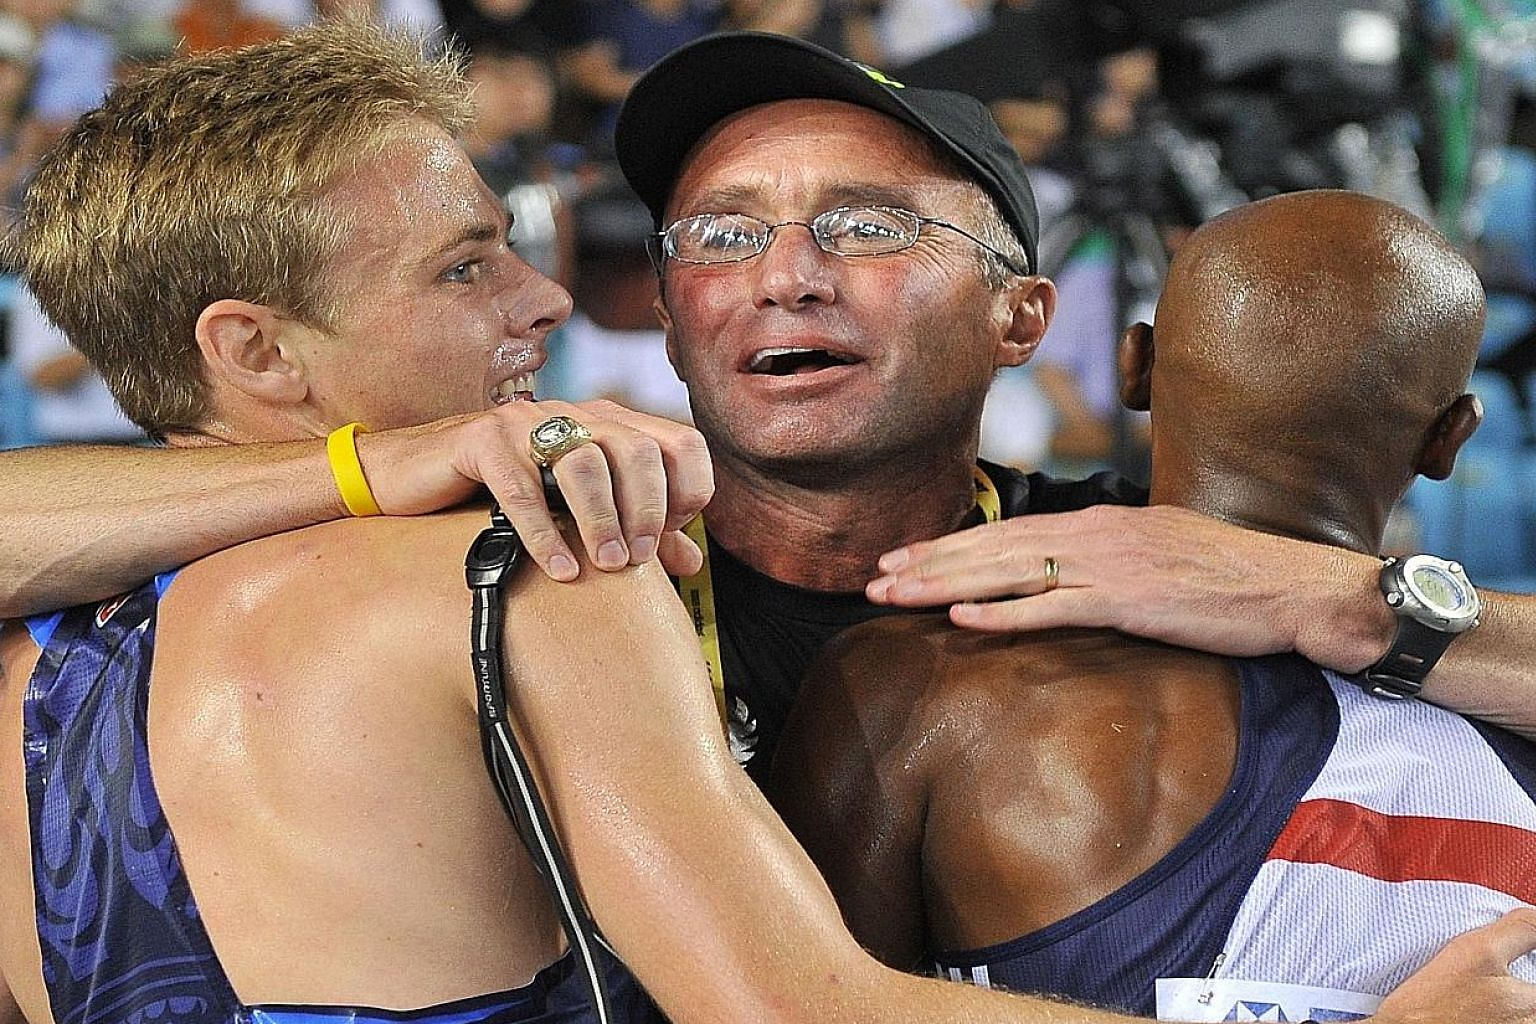 Coach Alberto Salazar, hugging winner Mo Farah (right) and Galen Rupp after the 5,000m final at the 2011 World Championships in Daegu in South Korea, is alleged to have given Rupp testosterone when the athlete was just 16 years old.